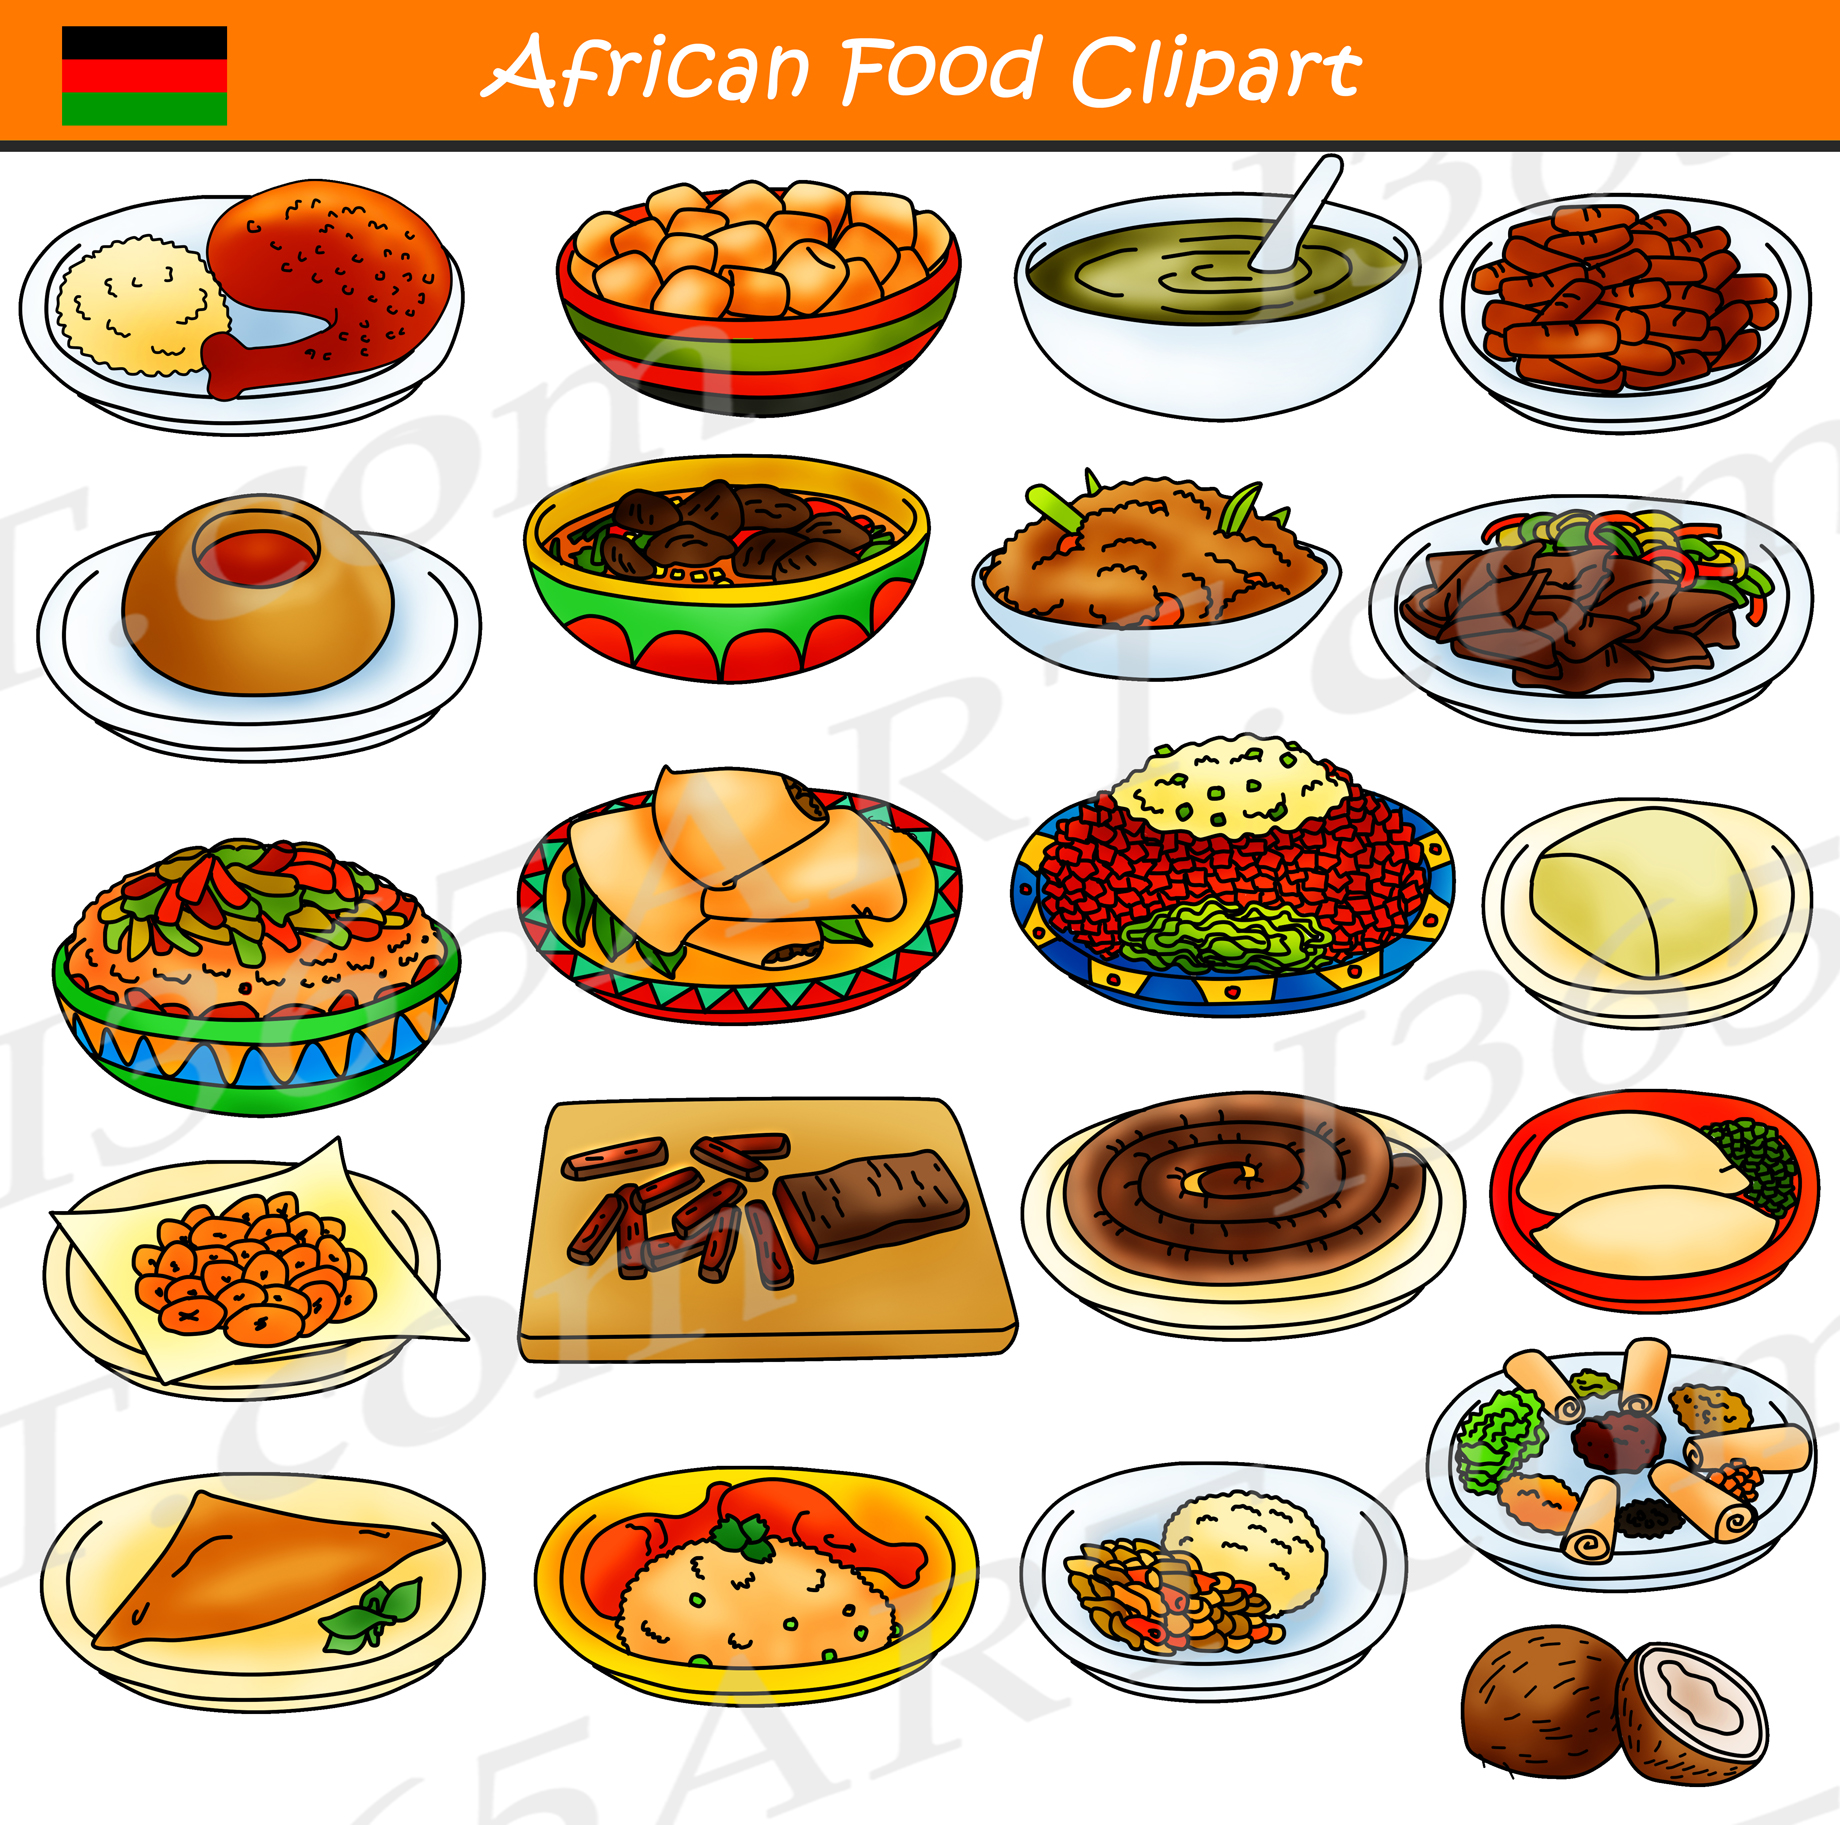 African Food Clipart Commercial